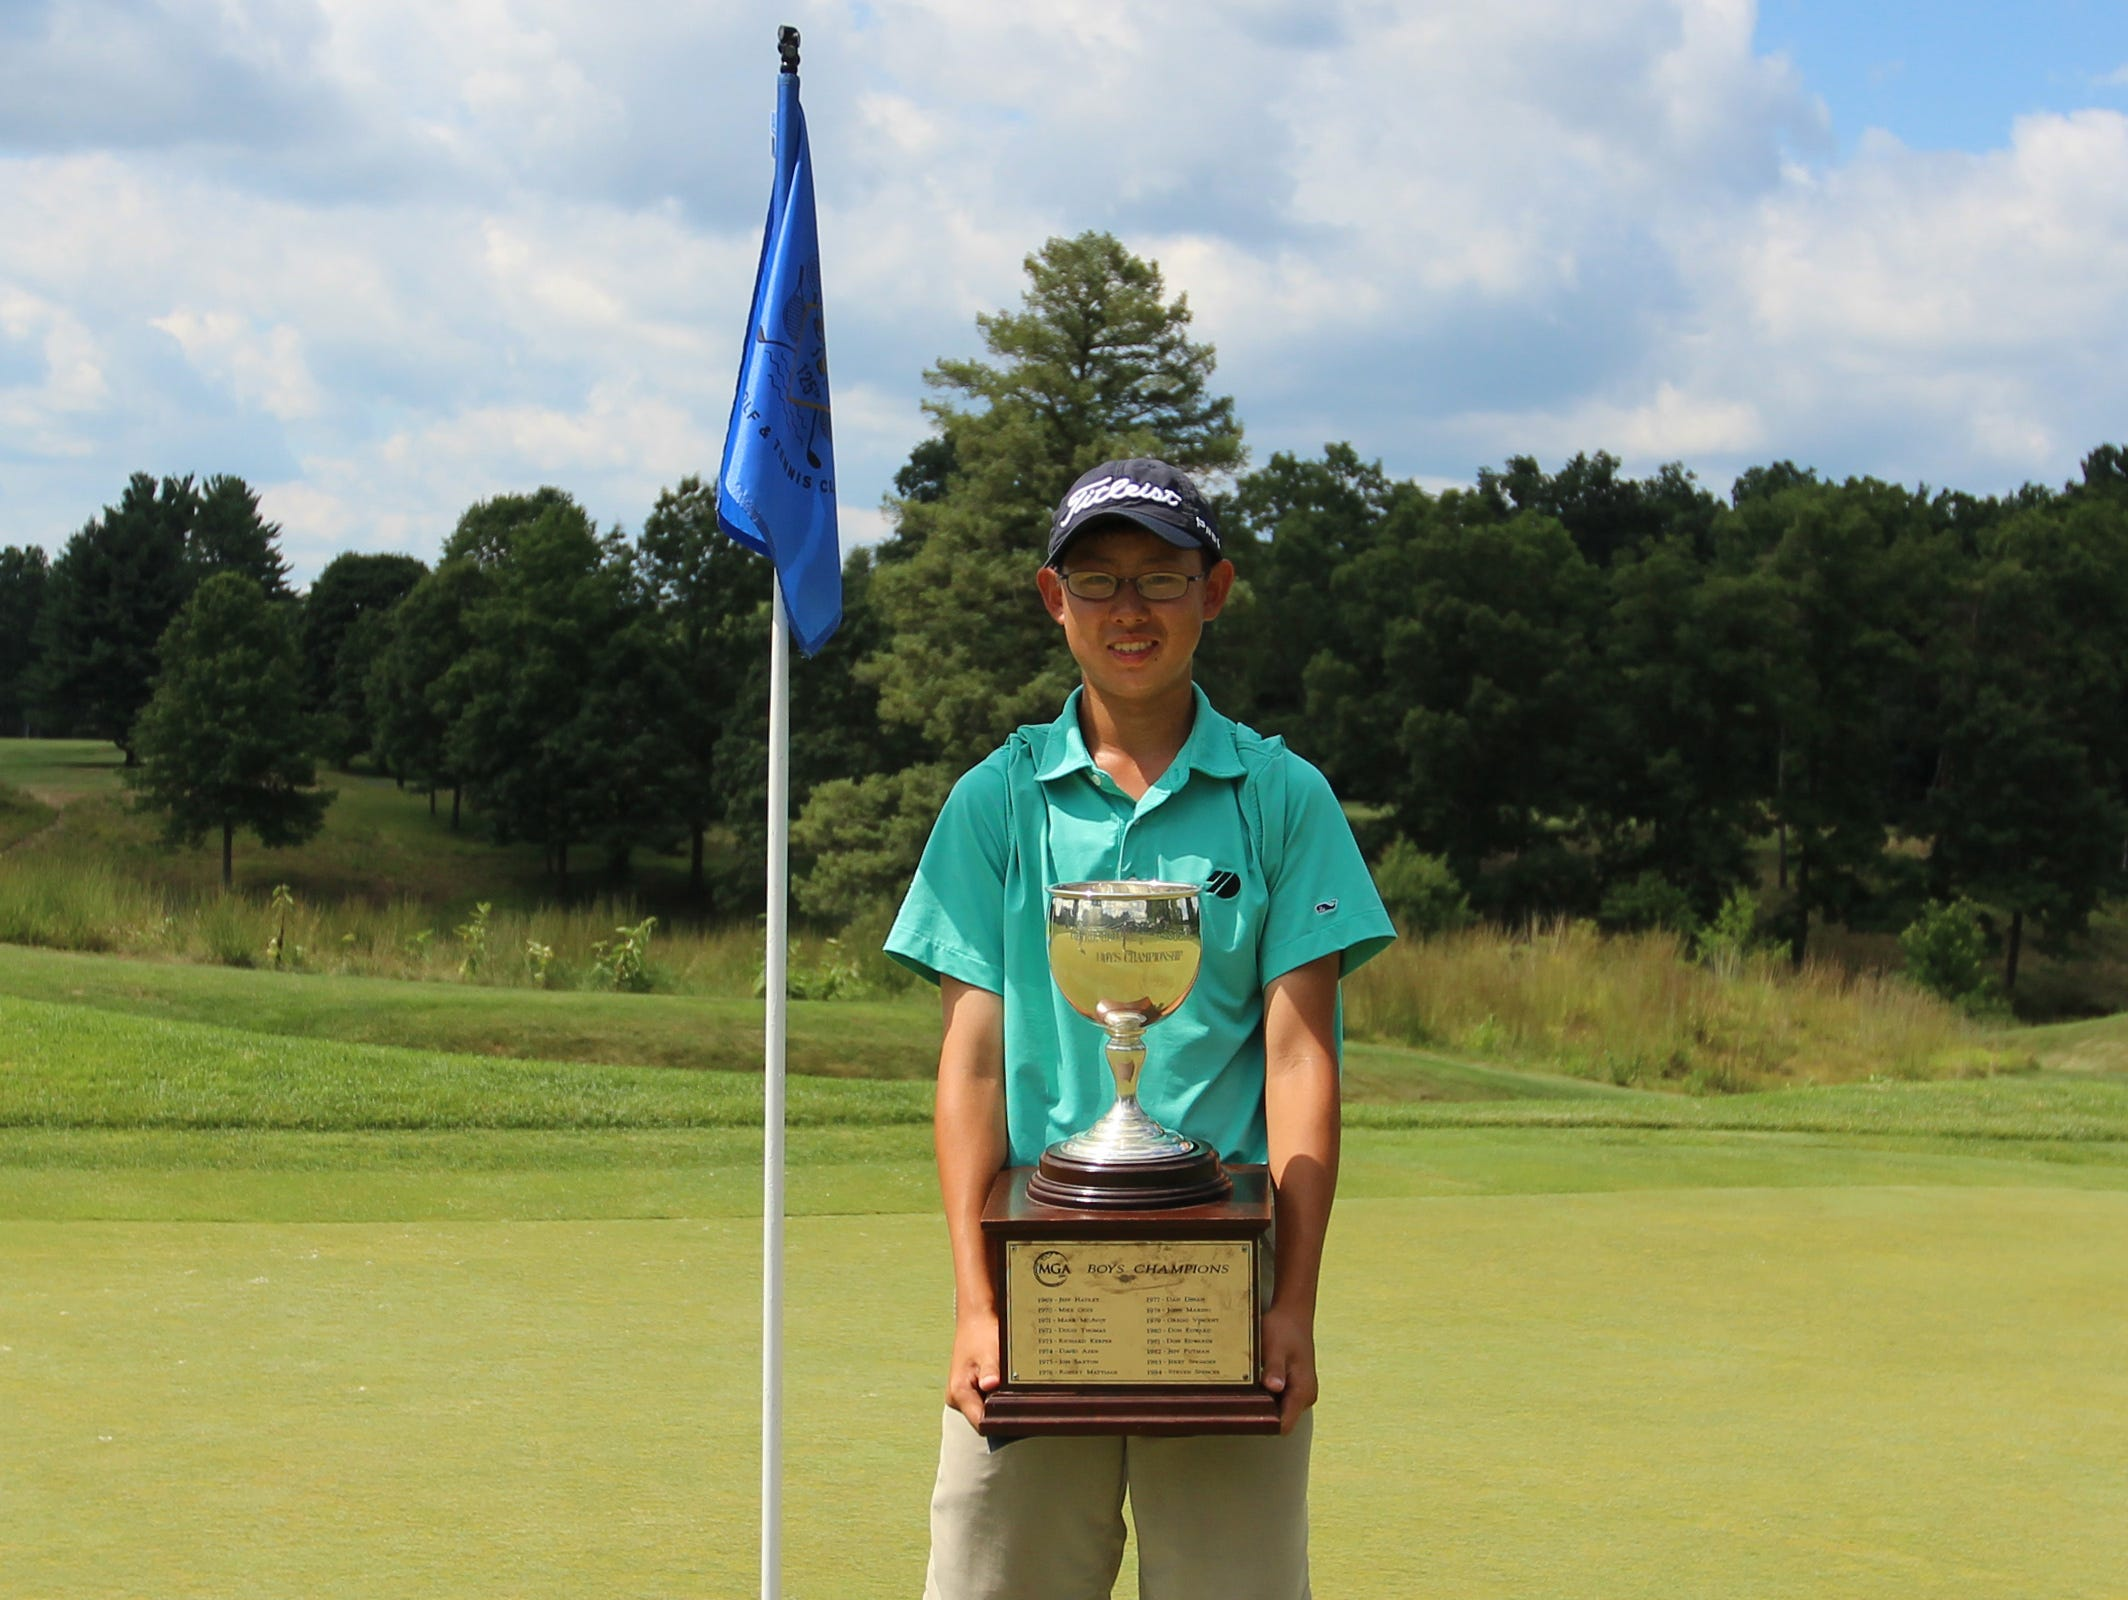 Nathan Han became the first player in 30 years to post back-to-back wins in the MGA/MetLife Boys Championship at Bedford Golf and Tennis.